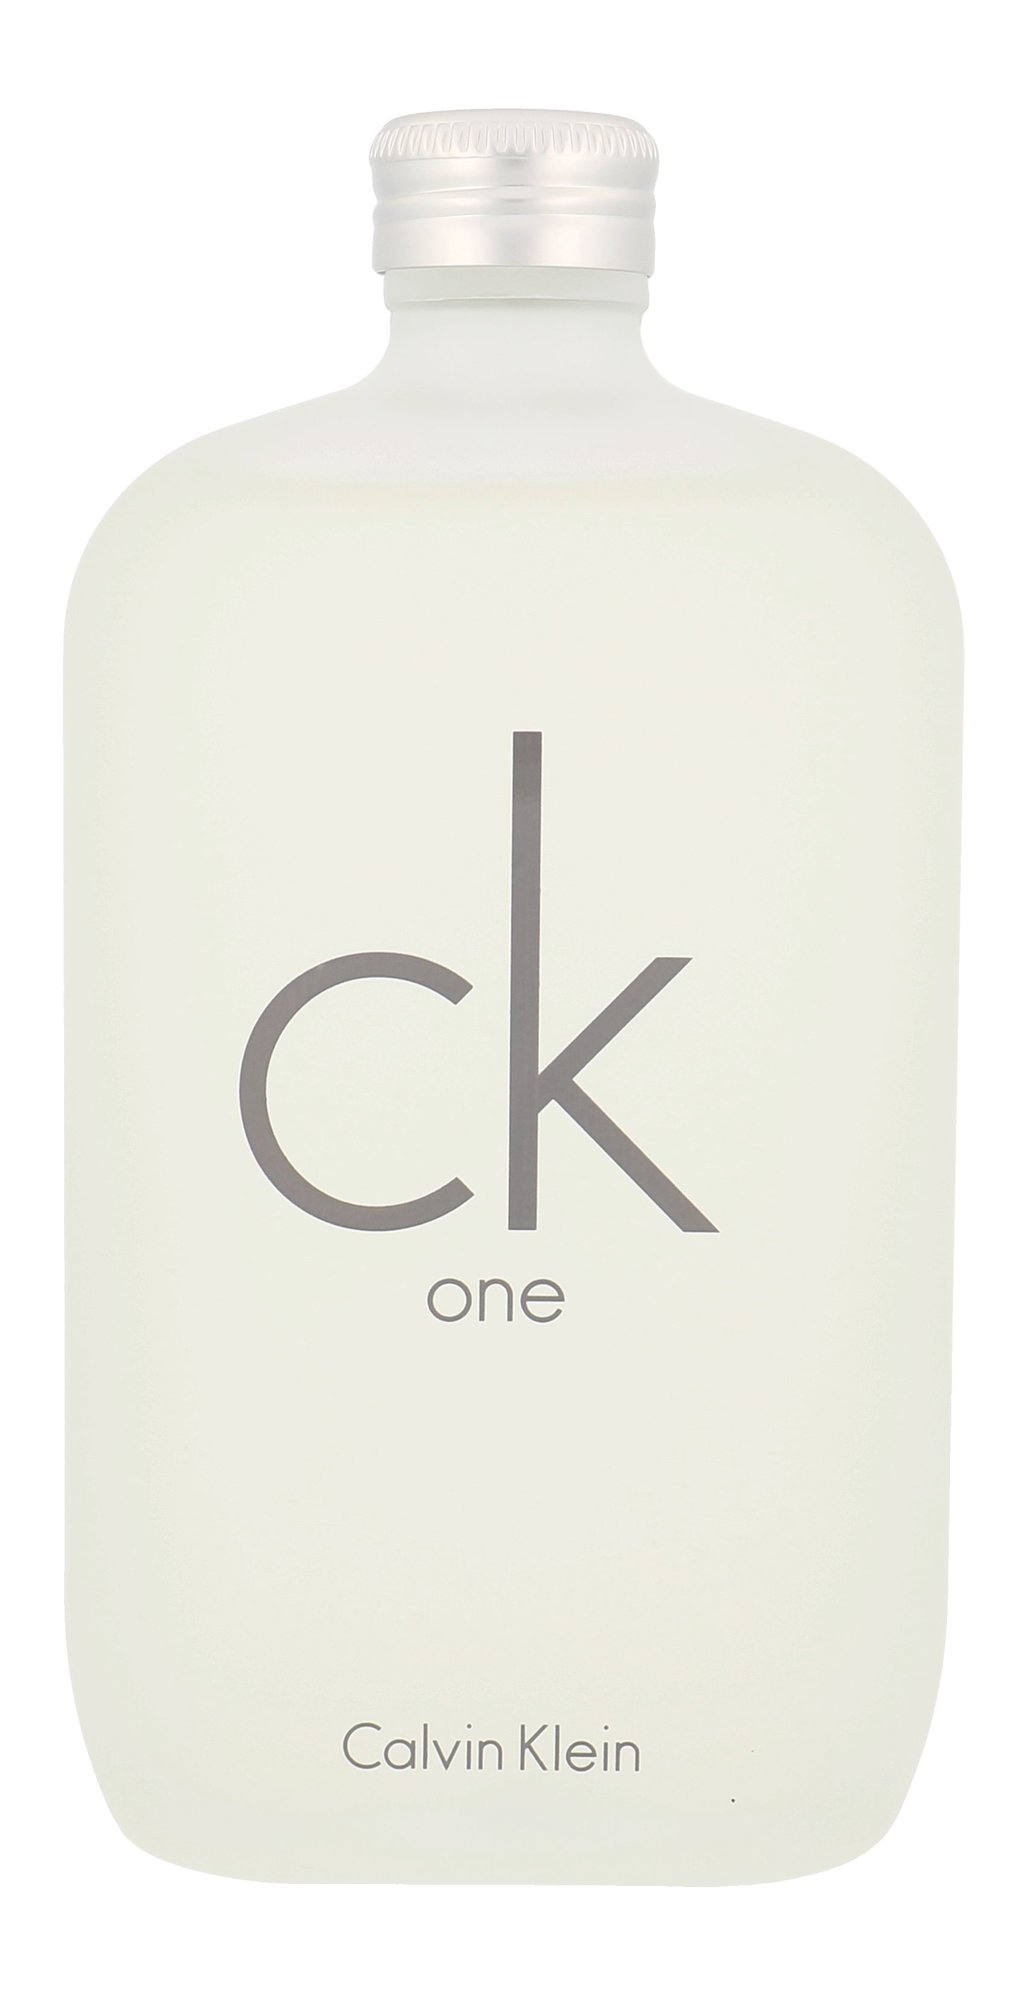 Calvin Klein CK One EDT 300ml